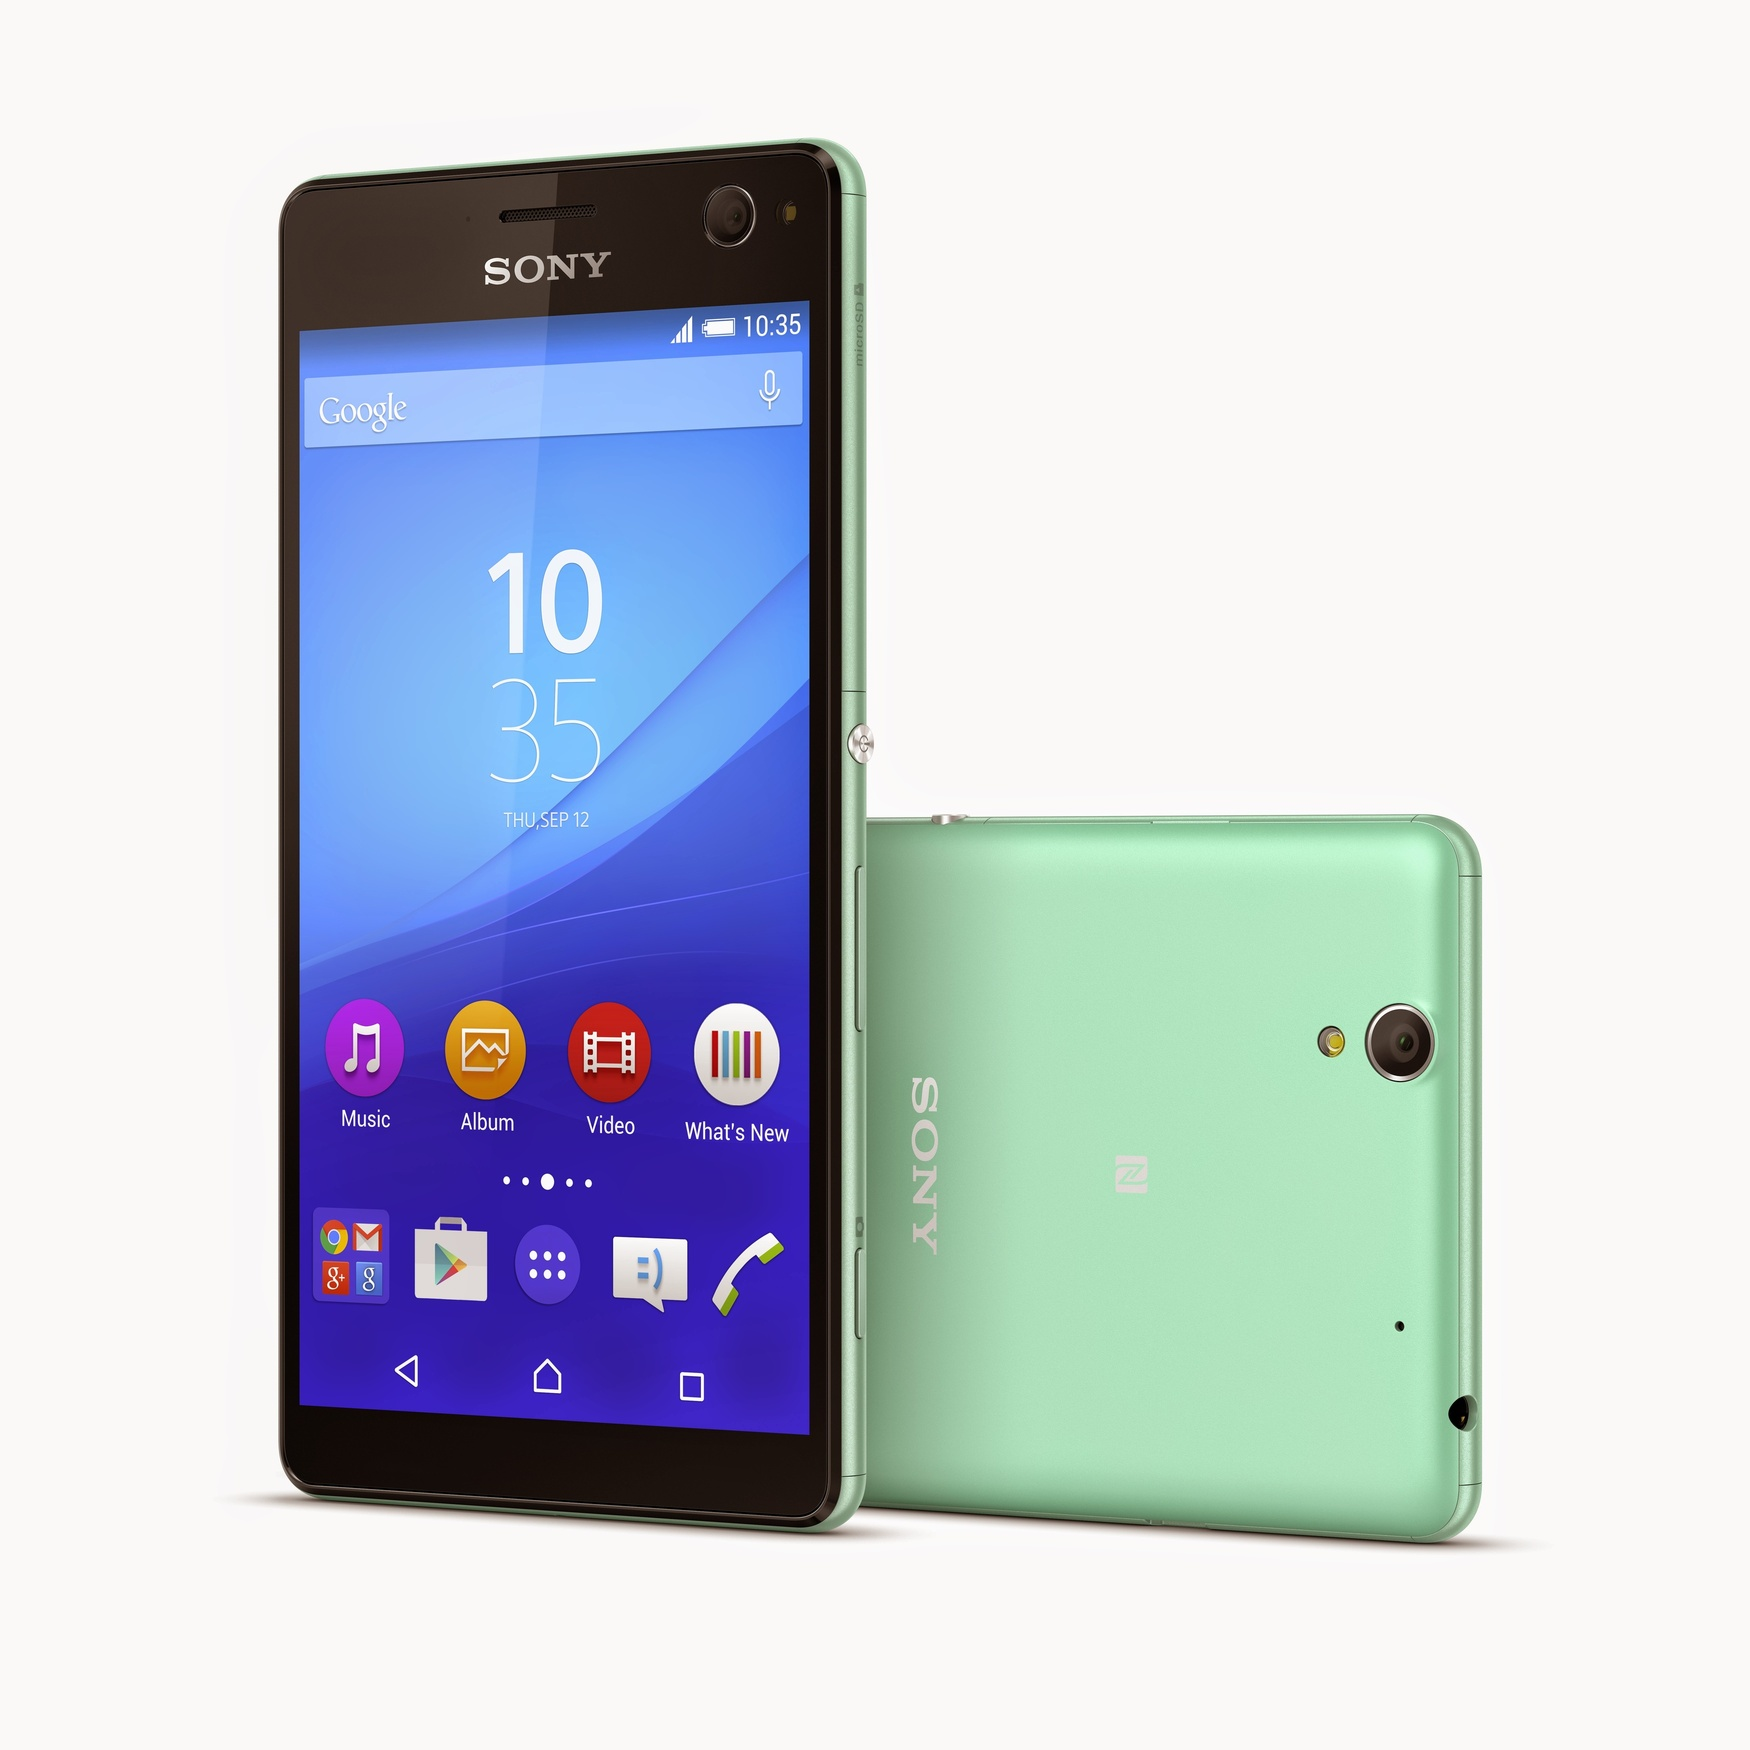 Sony-Xperia-C4-images (9)